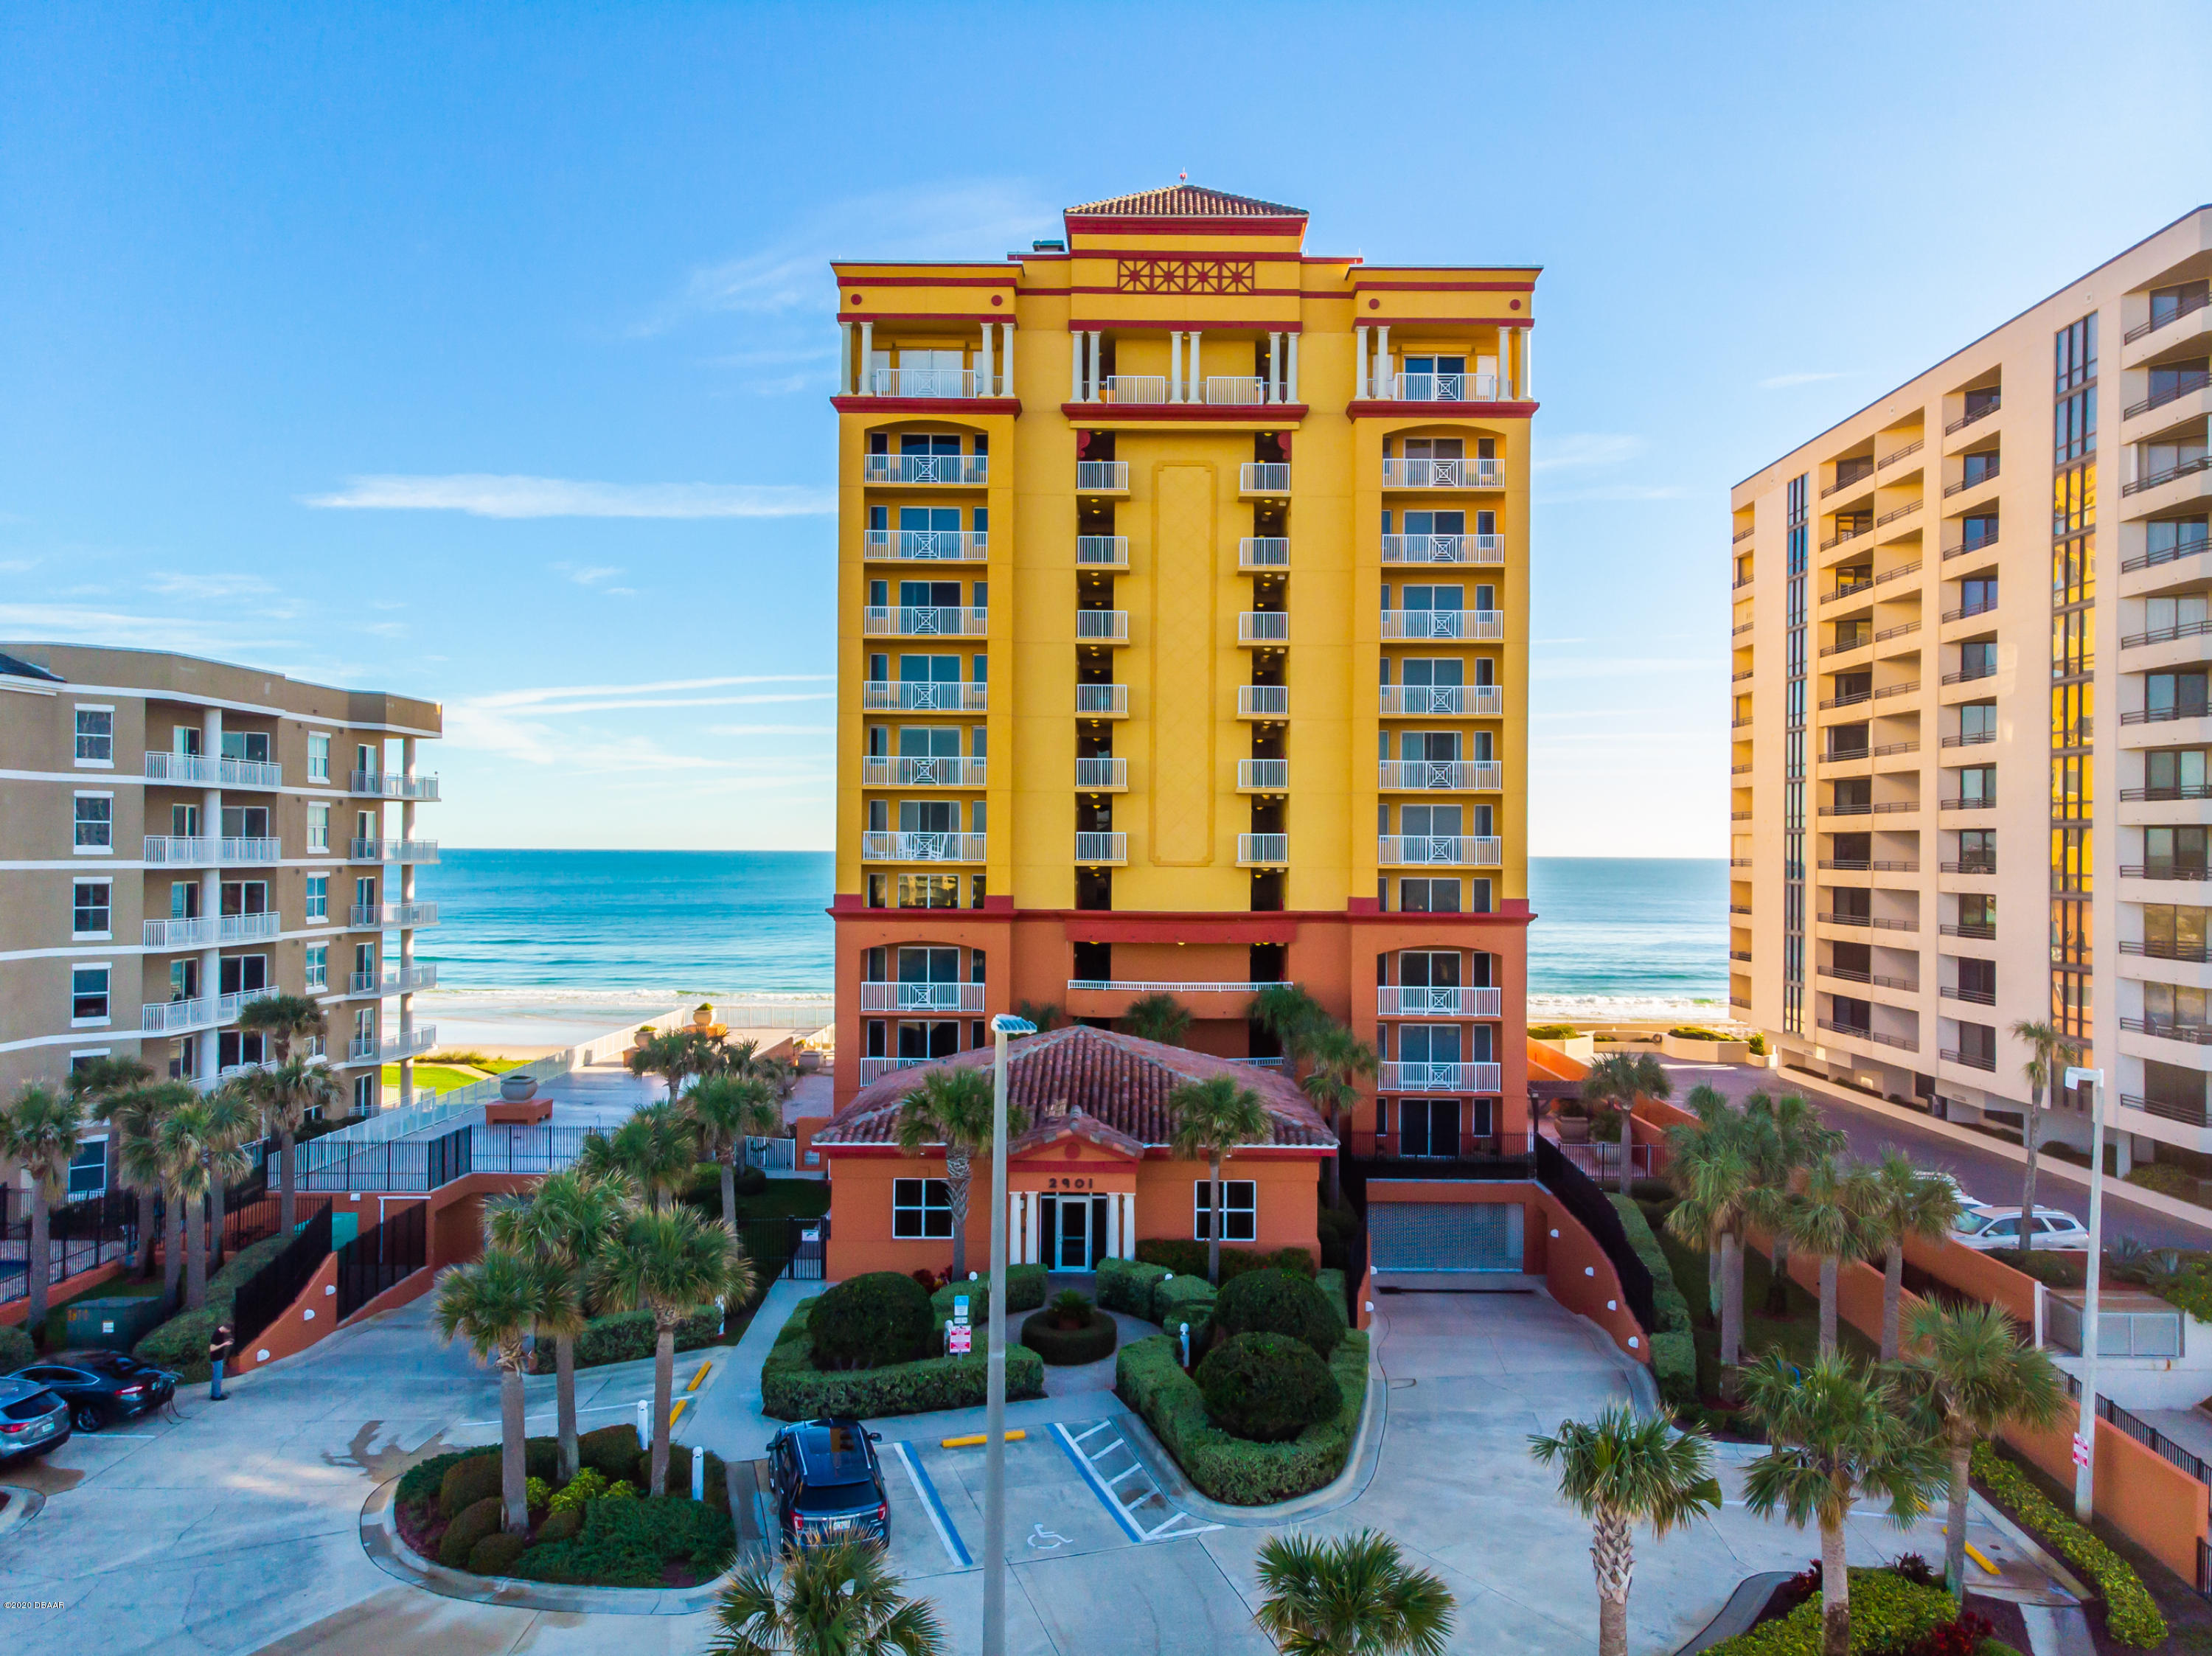 Photo of 2901 S Atlantic Avenue #302, Daytona Beach Shores, FL 32118